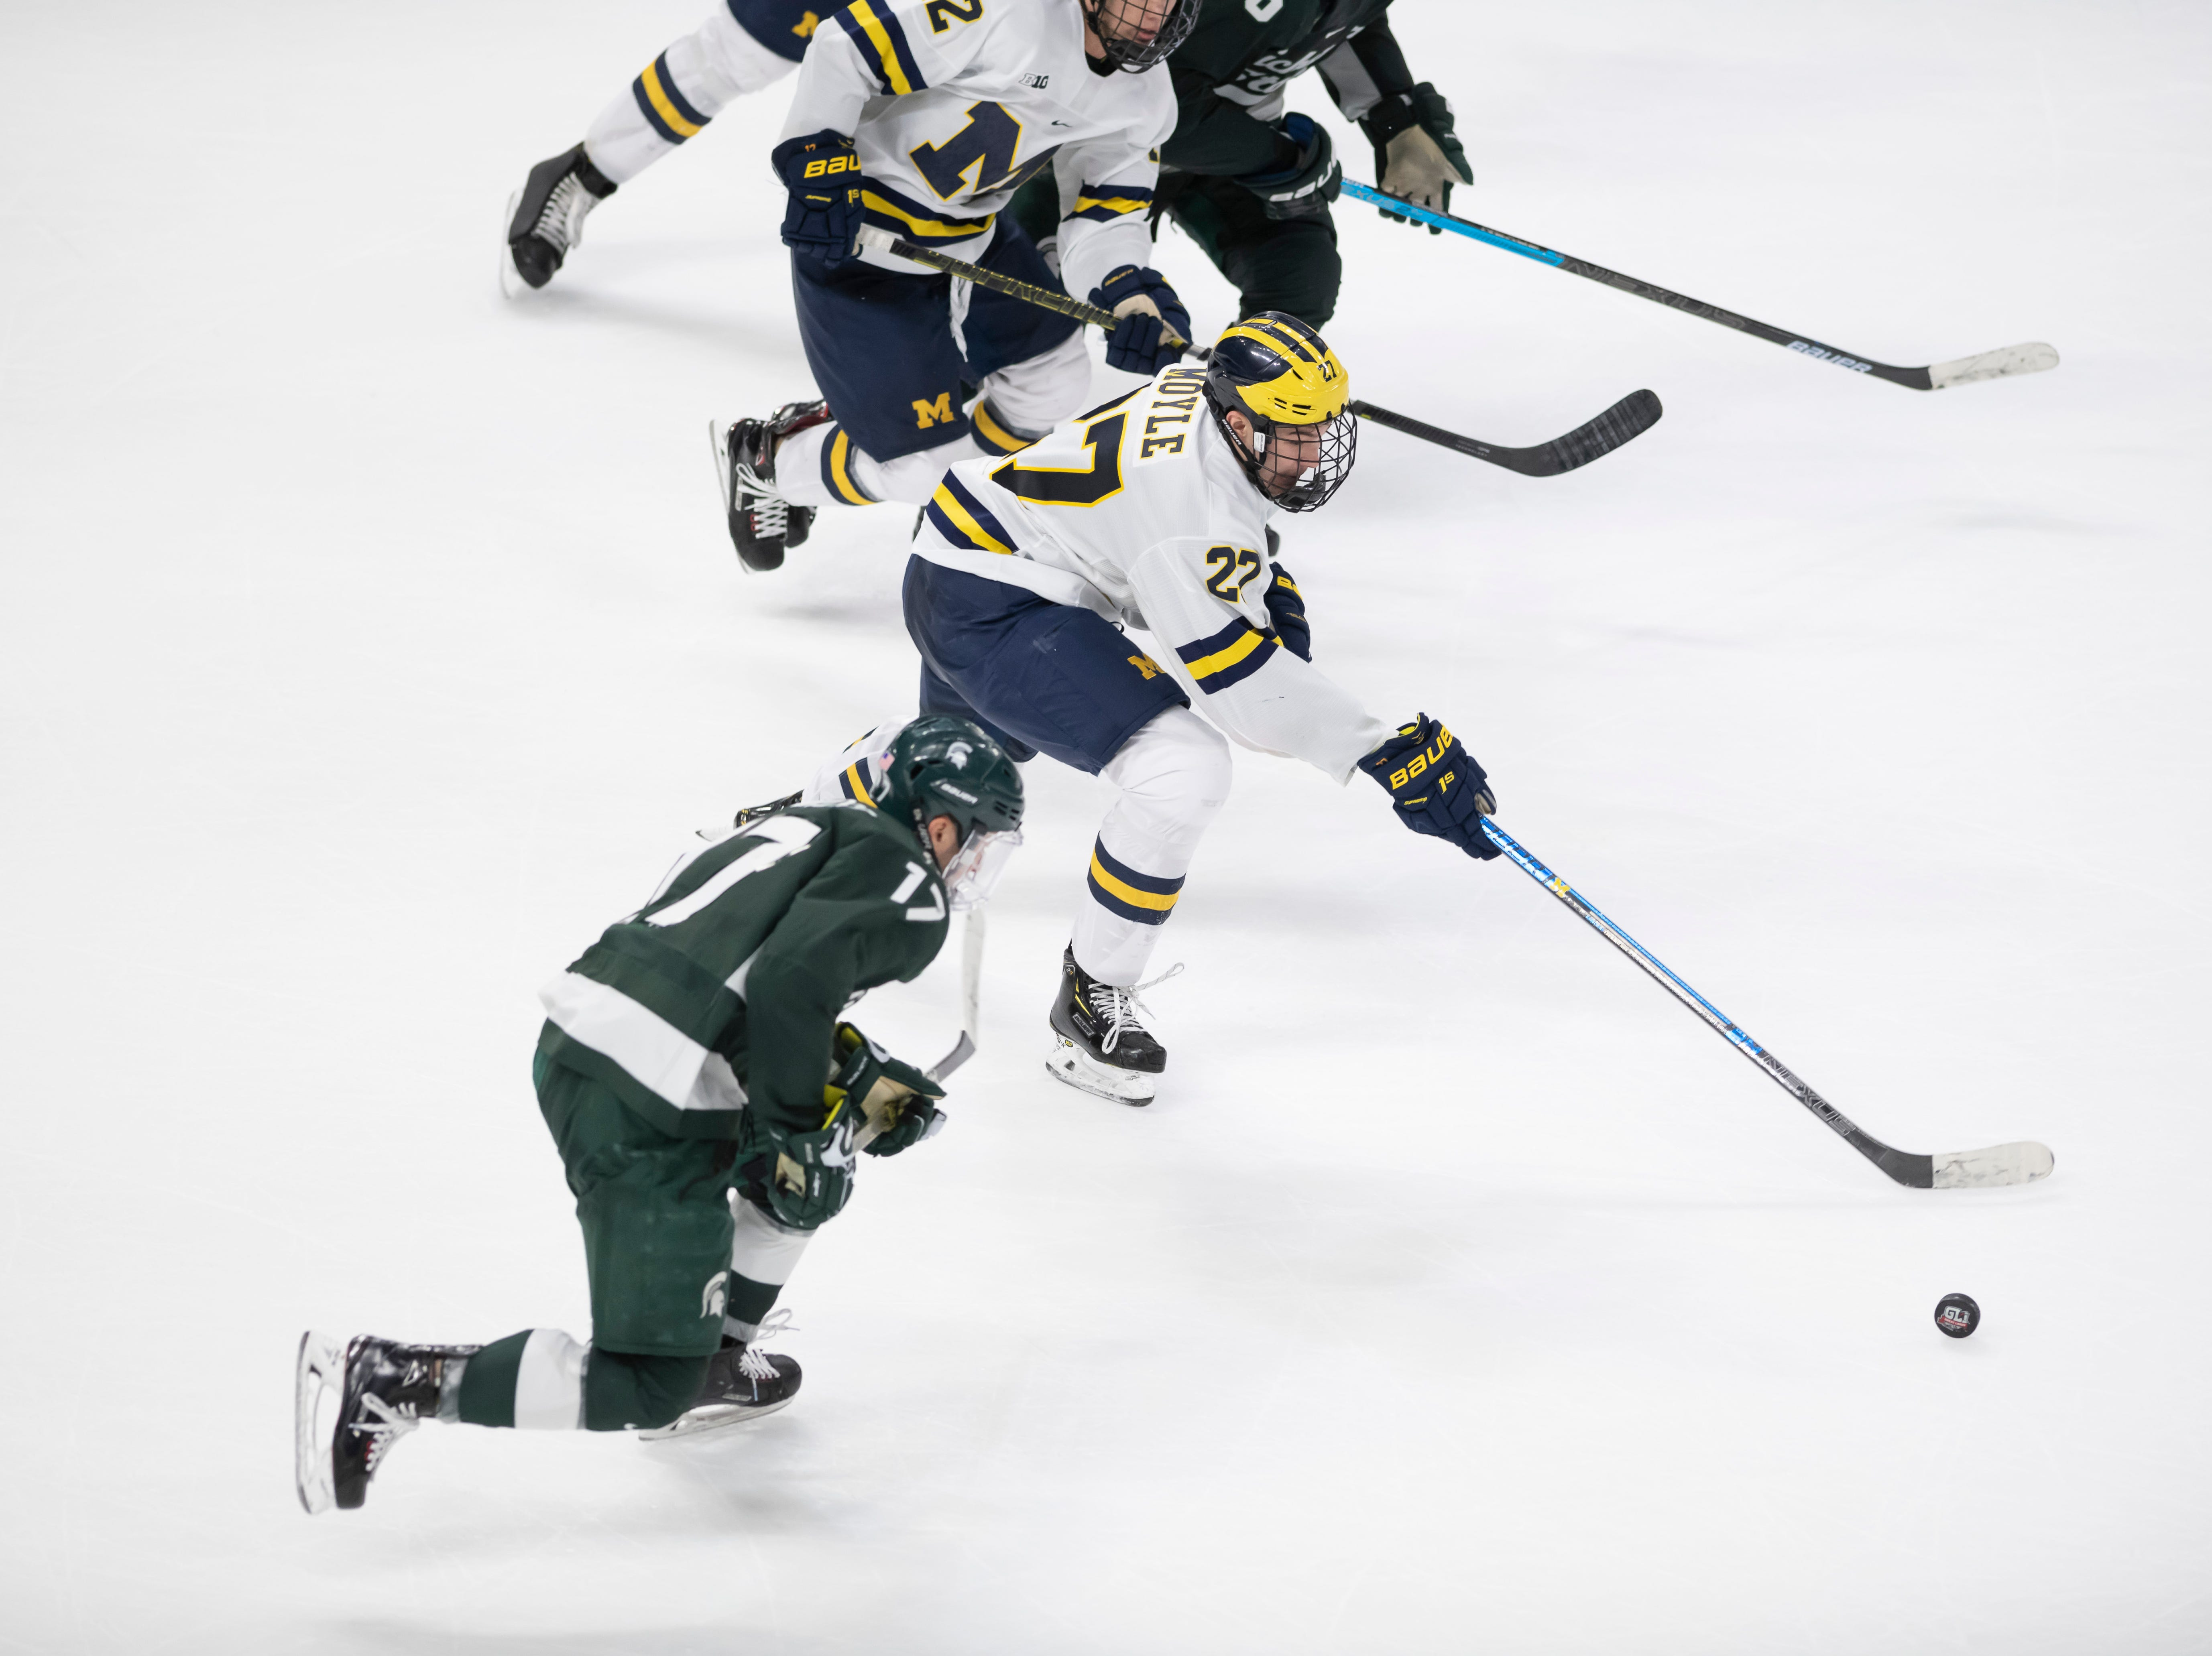 Michigan forward Nolan Moyle moves the puck up the ice in the overtime period.